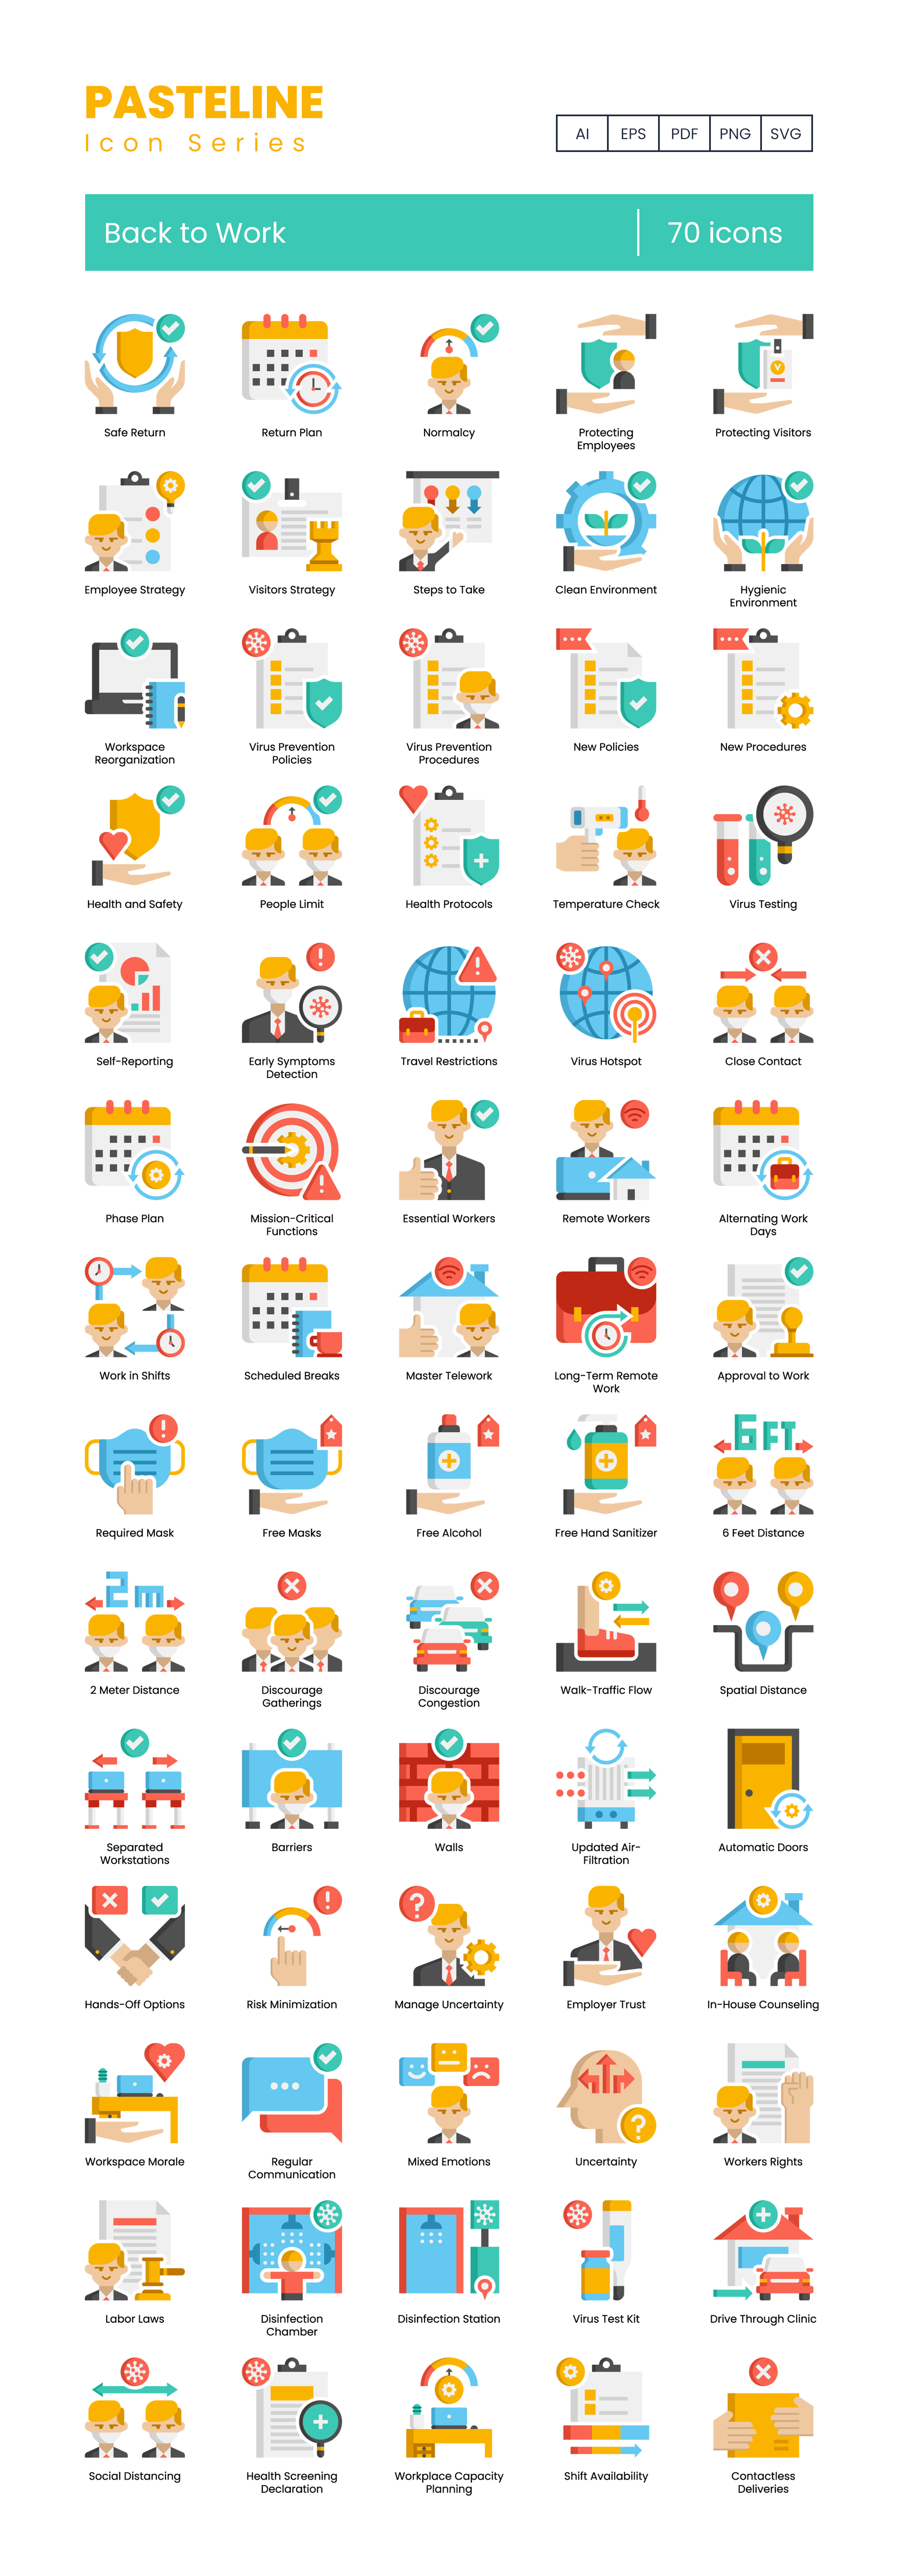 Back To Work Vector Icons Preview Image